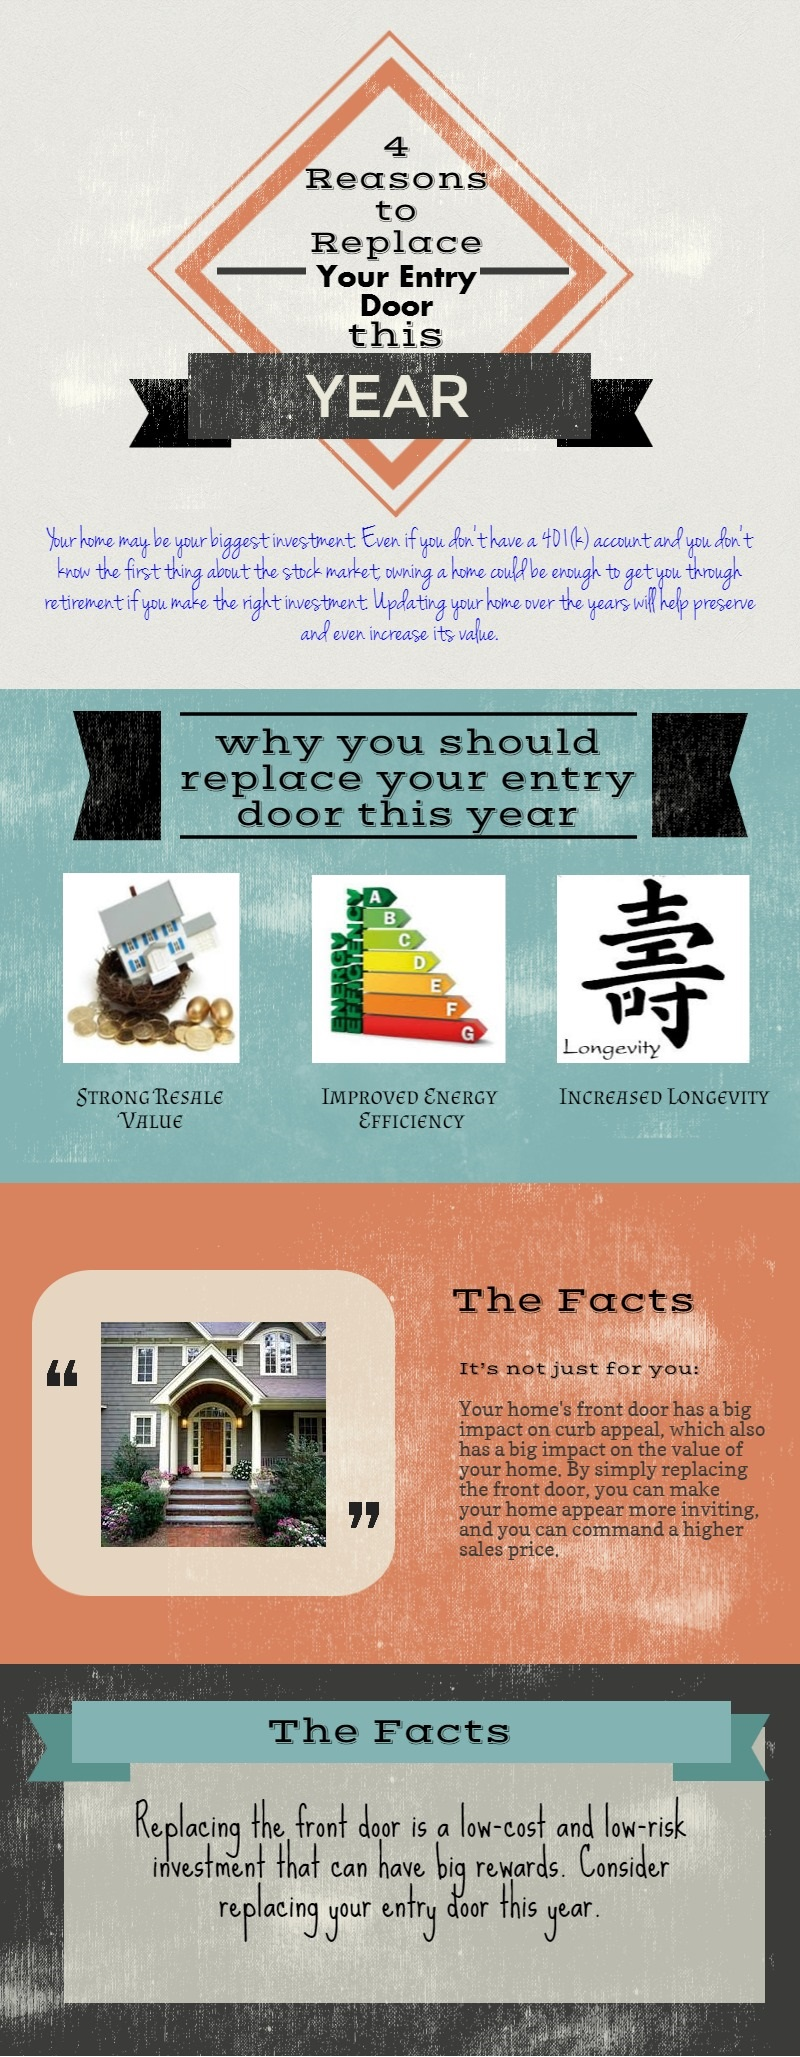 4 Reasons to Replace Your Entry Door